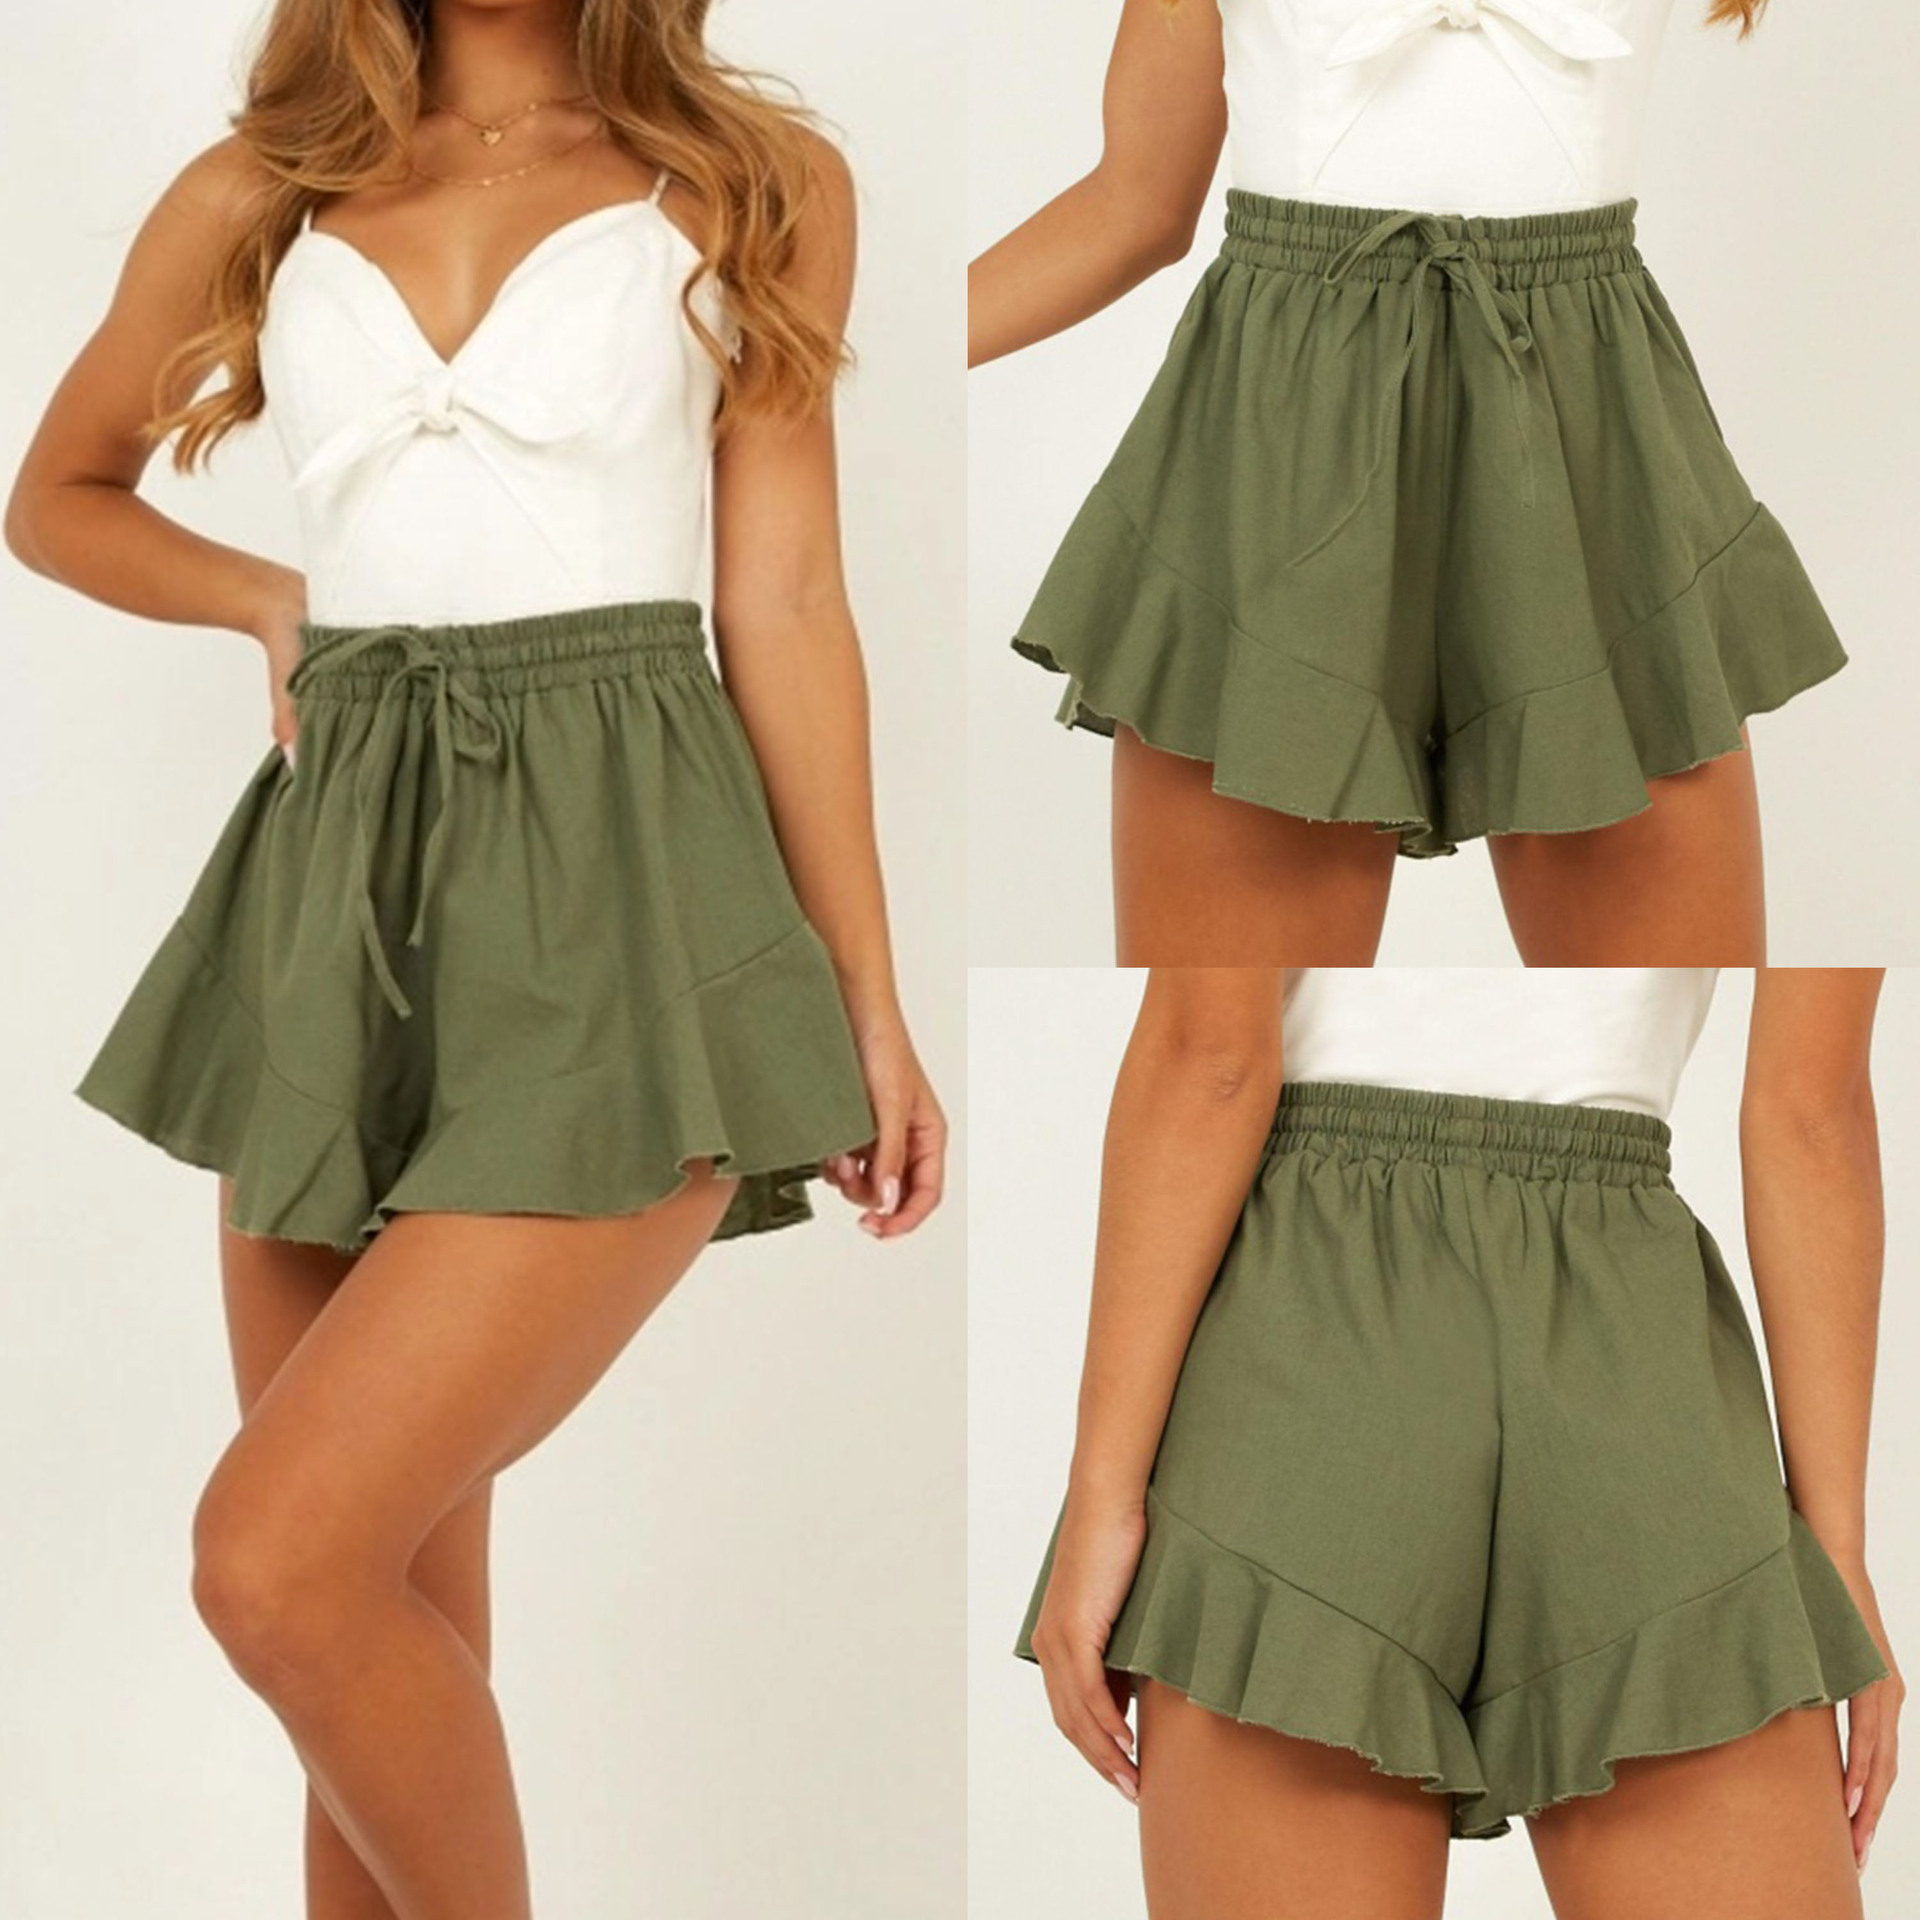 2019 New Arrivals Women Summer Clothes  Causal Shorts Wide Leg Shorts Sexy Green High Waist Bandage Short Ruffled Shorts